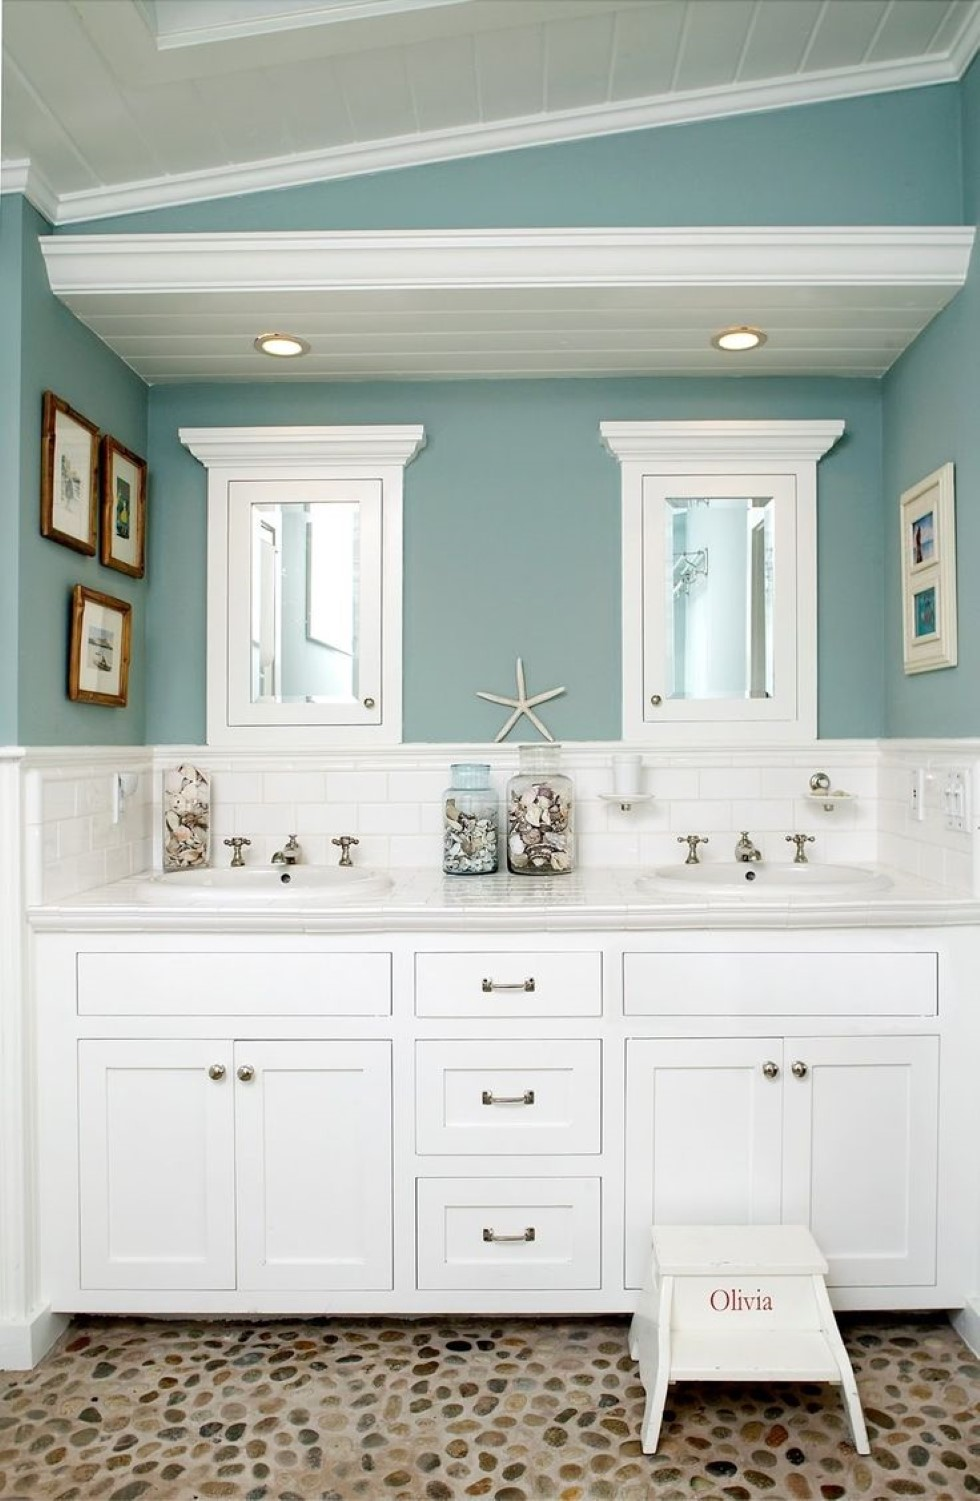 mini-white-starfish-display-mixed-with-adorable-pebble-stone-tile-floor-in-blue-seaside-bathroom-ideas